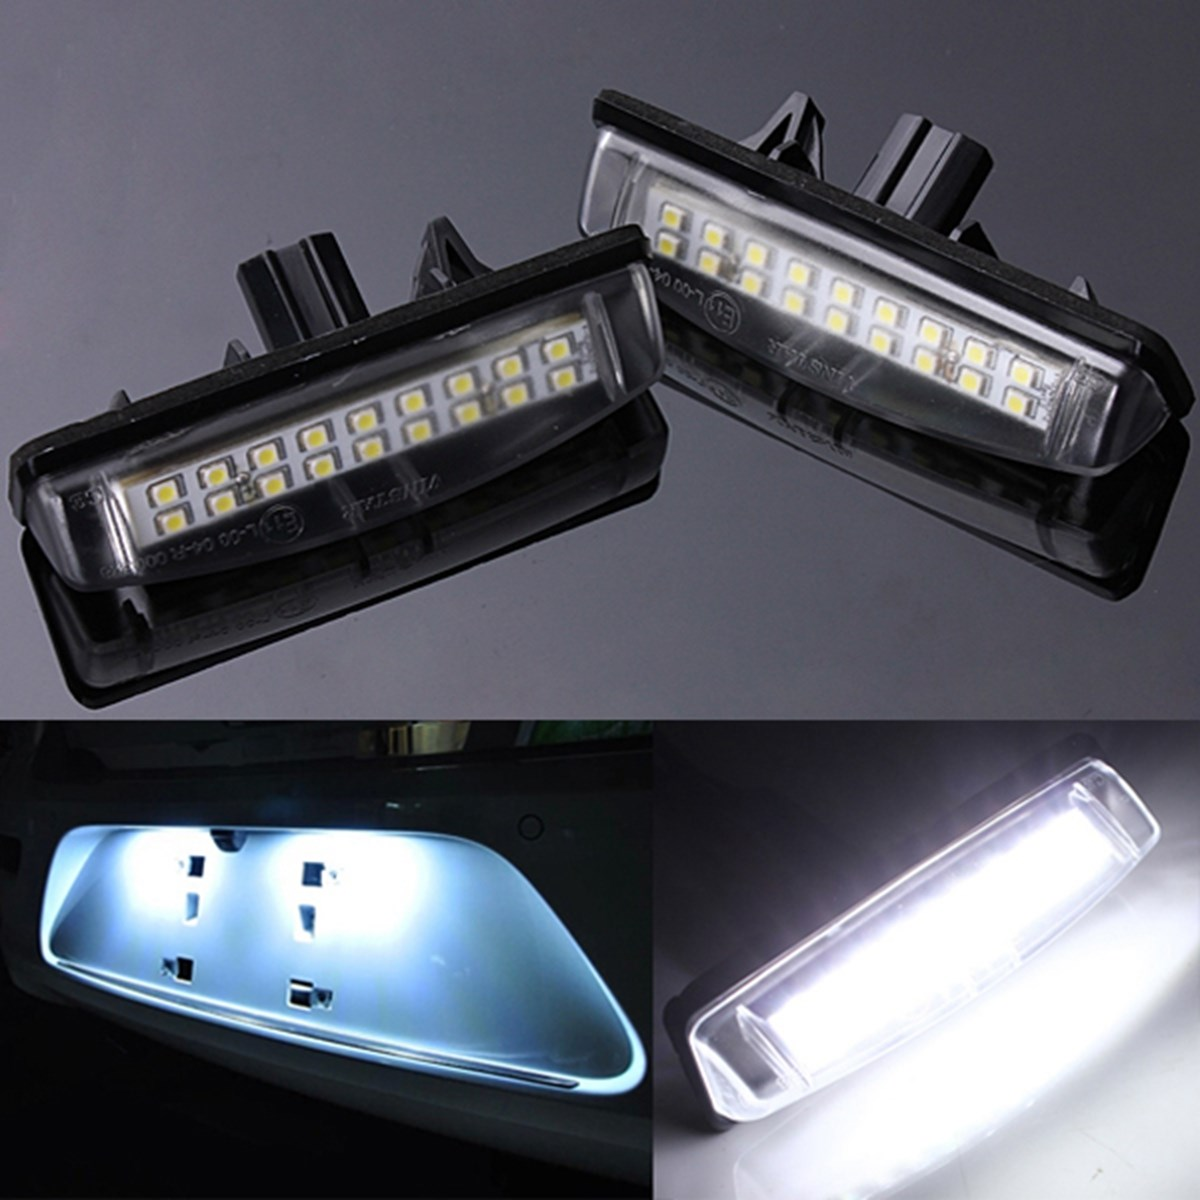 2X White Car LED License Plate Lights 12V Number Plate Lamp No Error fit For Lexus IS200 IS300 GS300 liandlee for alfa romeo 156 159 166 147 led car license plate light number frame lamp high quality led lights